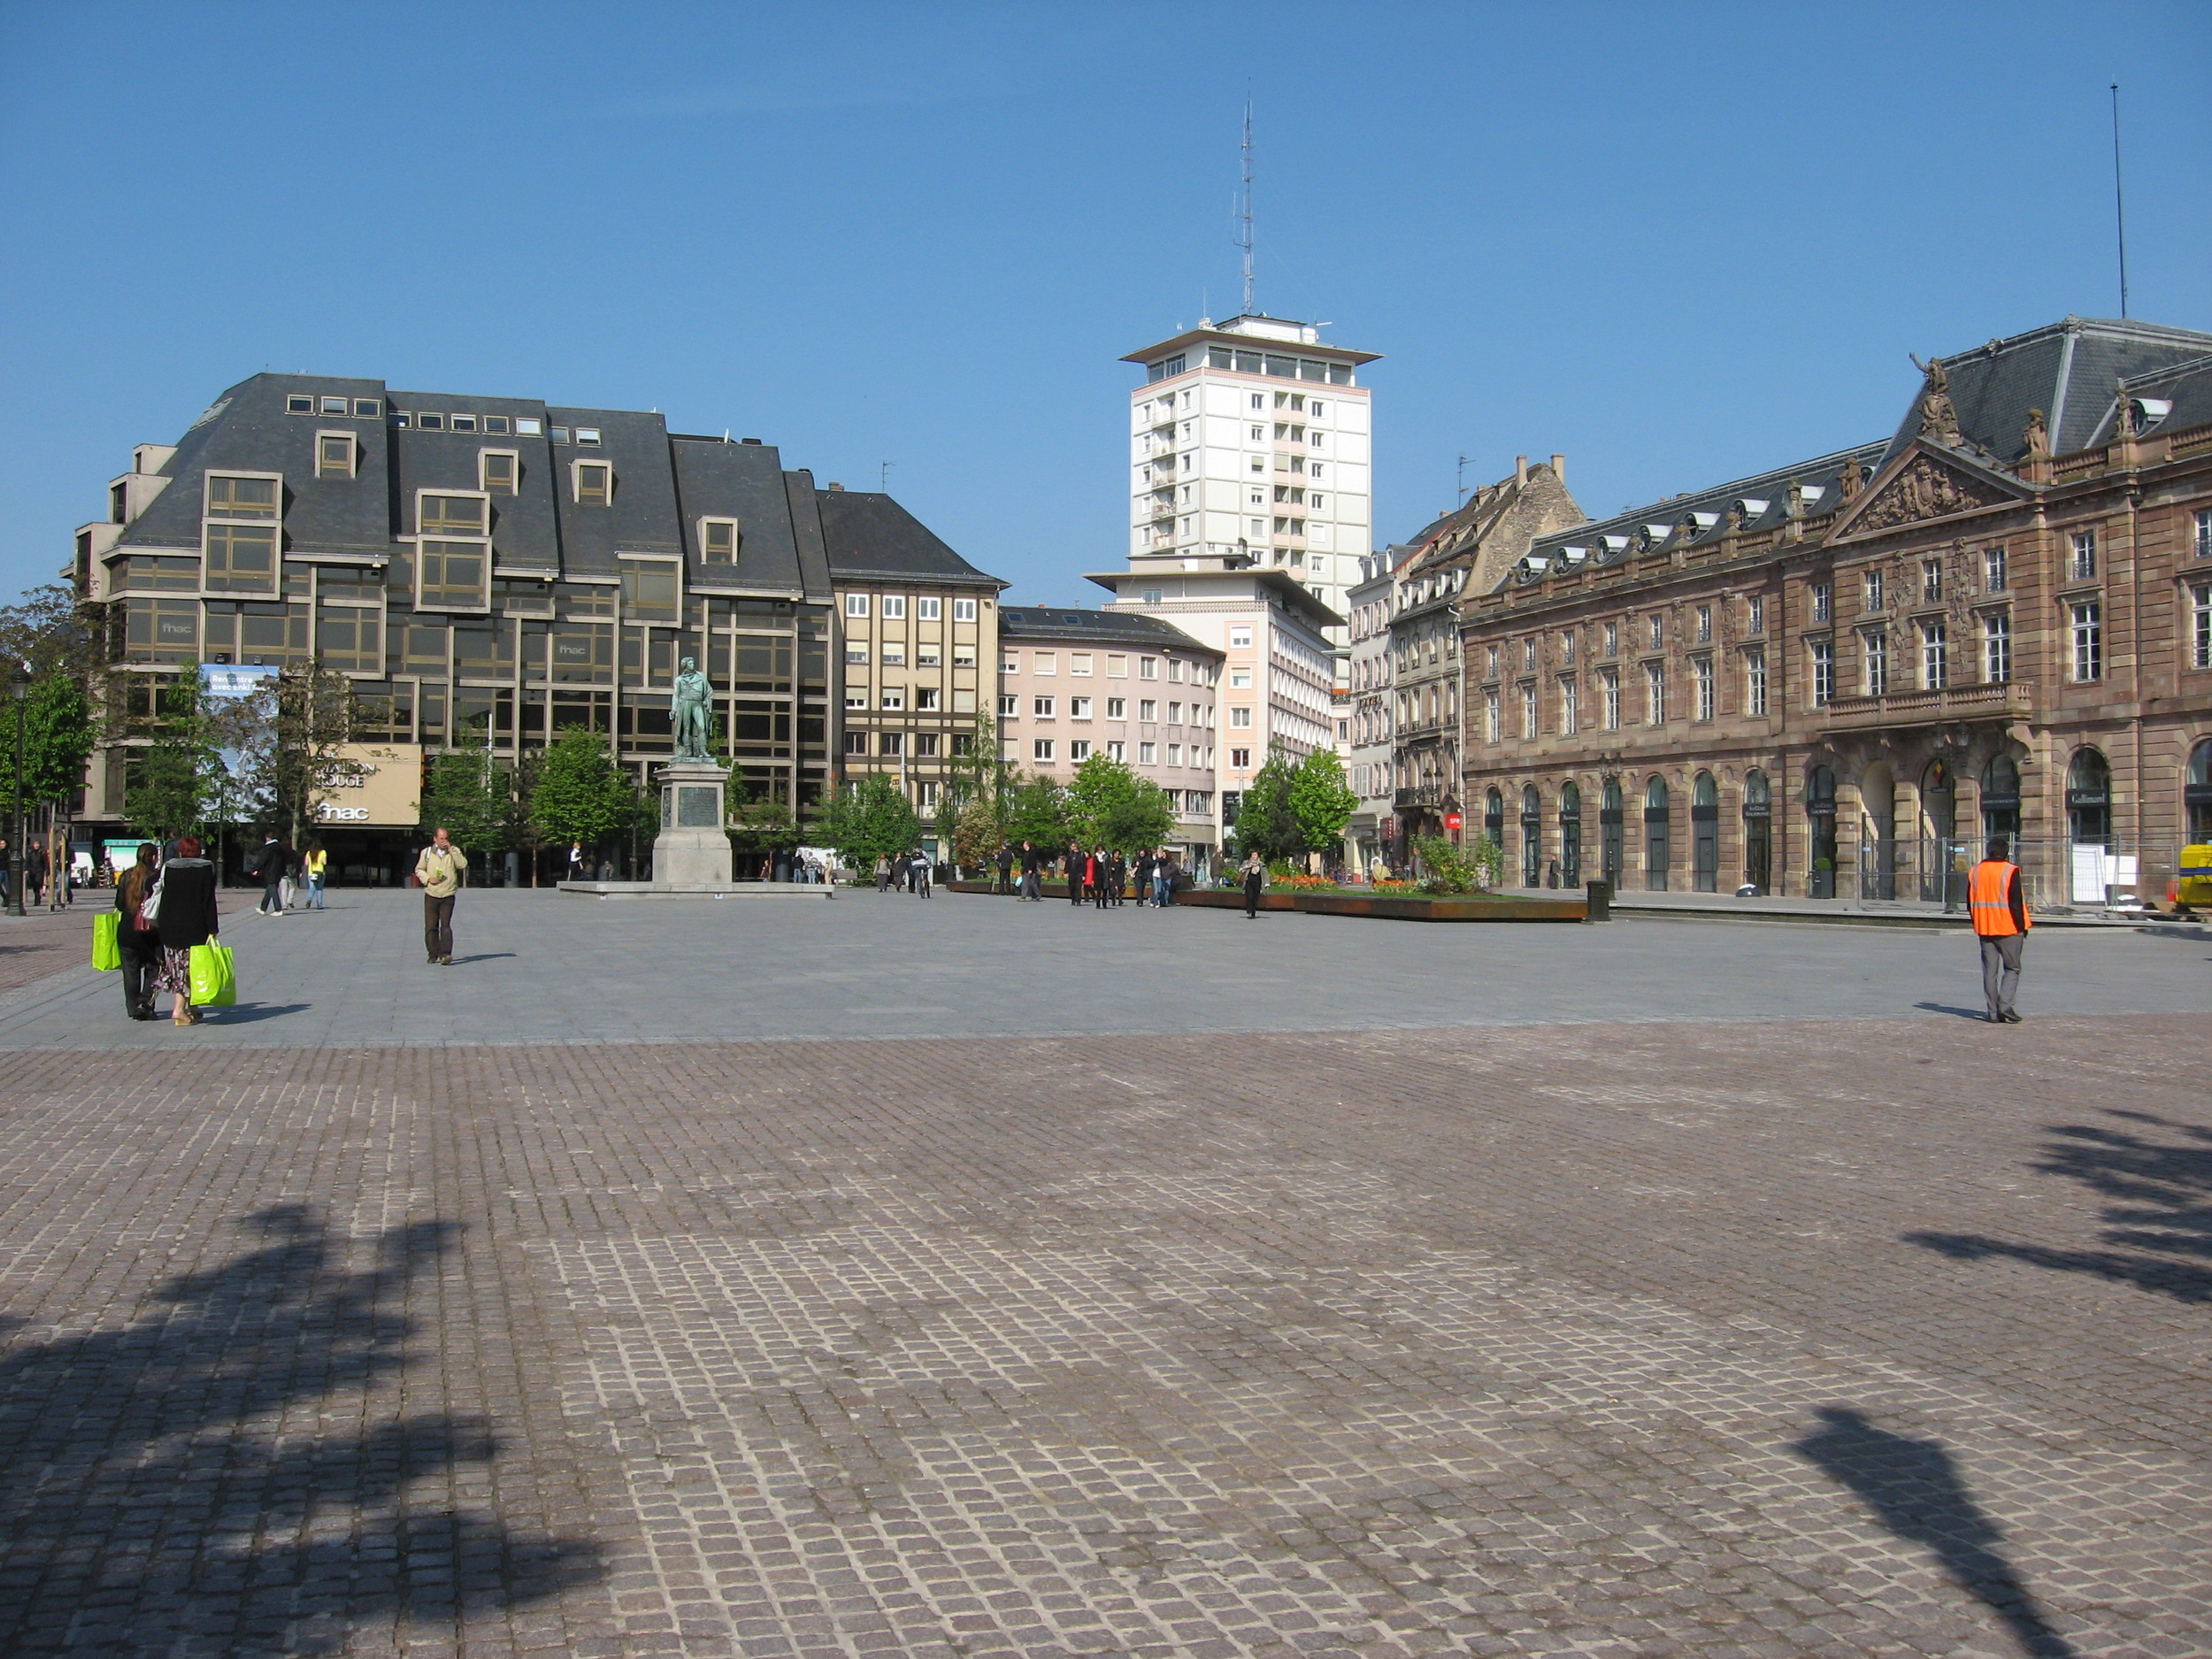 Strasborg town square is a wide open flat hard surfaced space that can be used for a variety of activities.  This is an early morning photo, later in the day it is busy with people cutting through or on market day it is full of vendors.